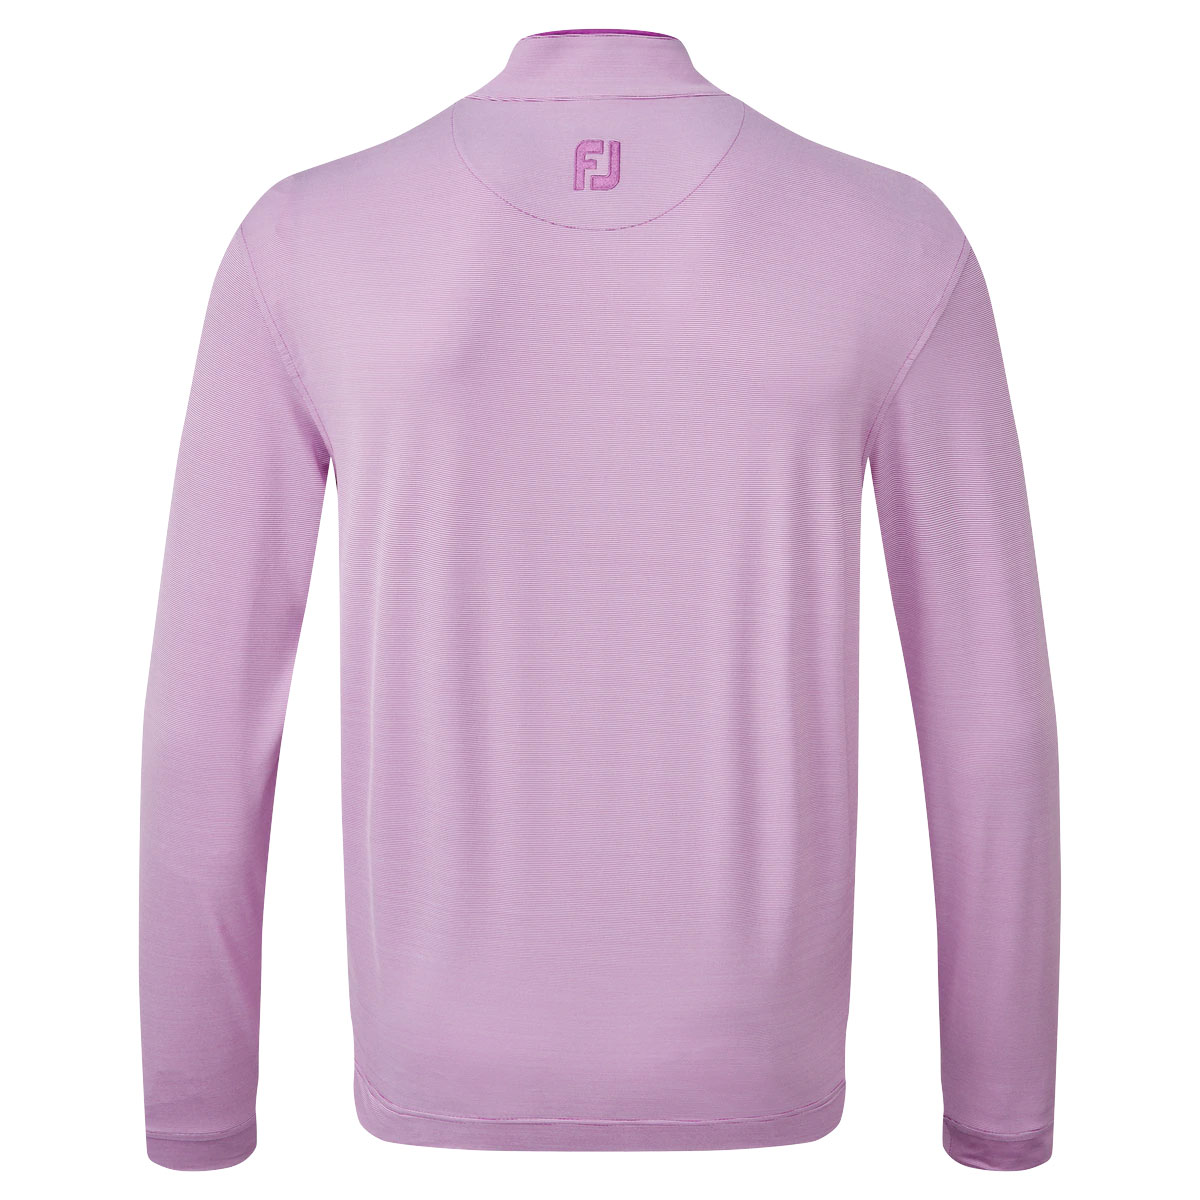 FootJoy Lightweight Microstripe Chill-Out Mens Golf Pullover  - Mulberry/White